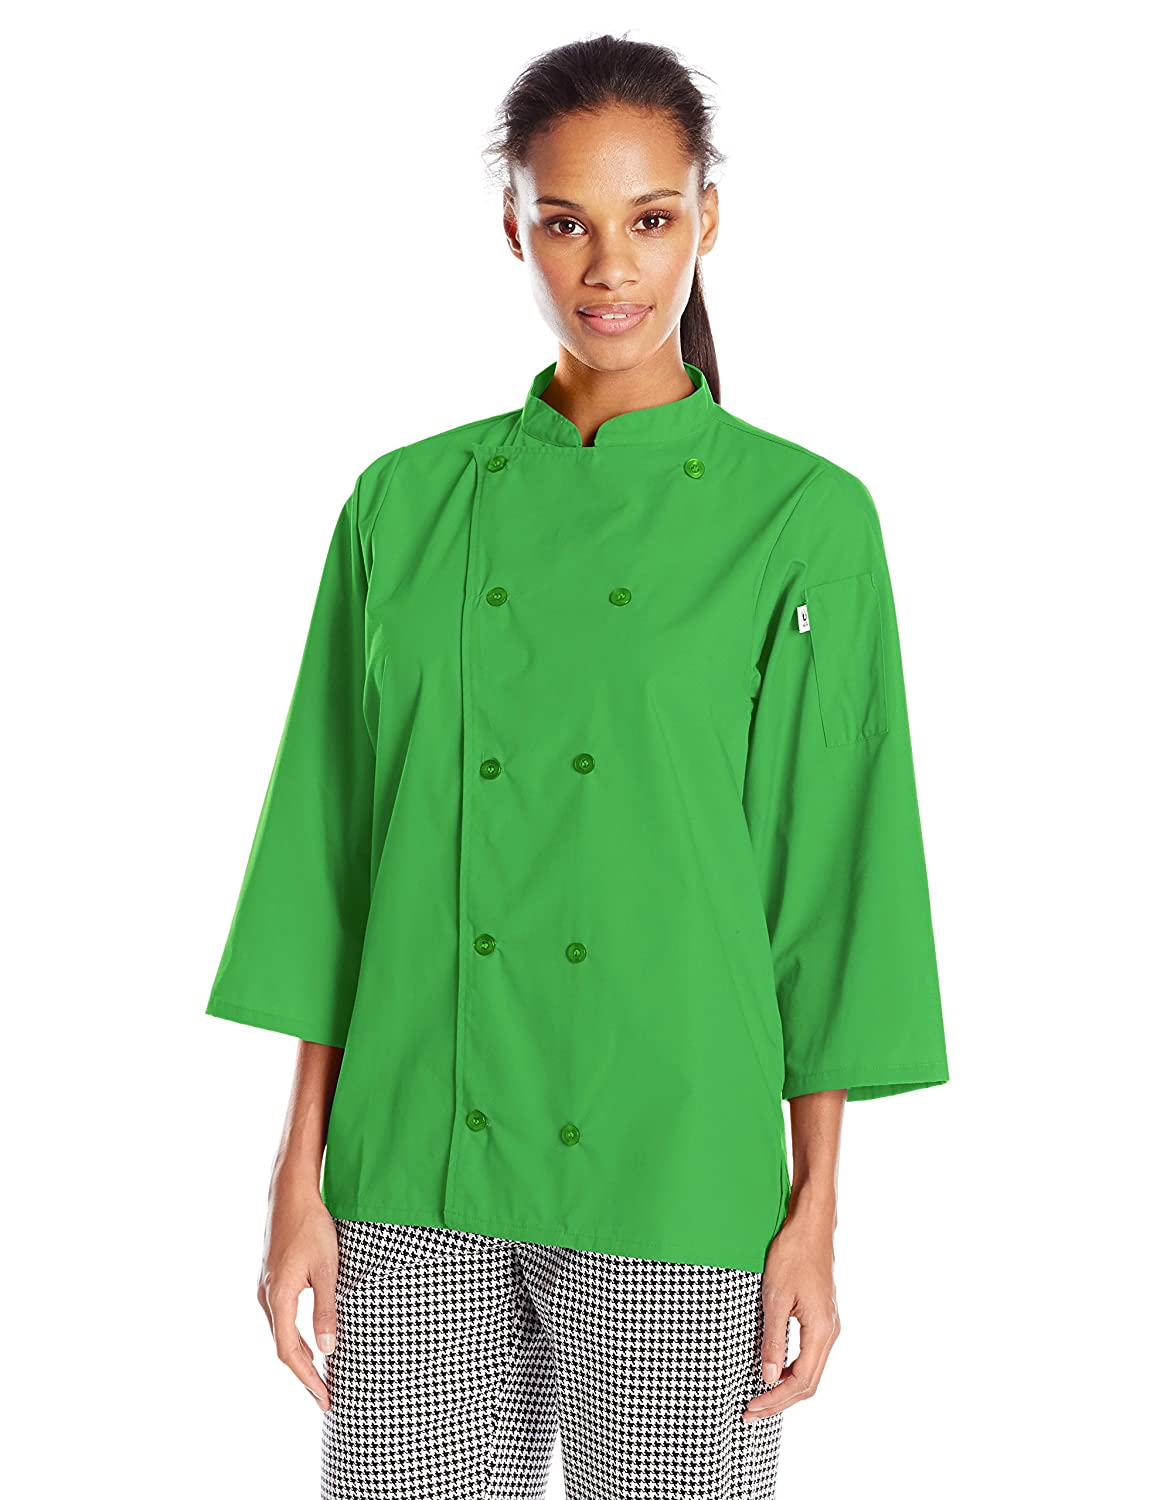 Uncommon Threads Epic 3/4 Sleeve Chef Shirt 0975